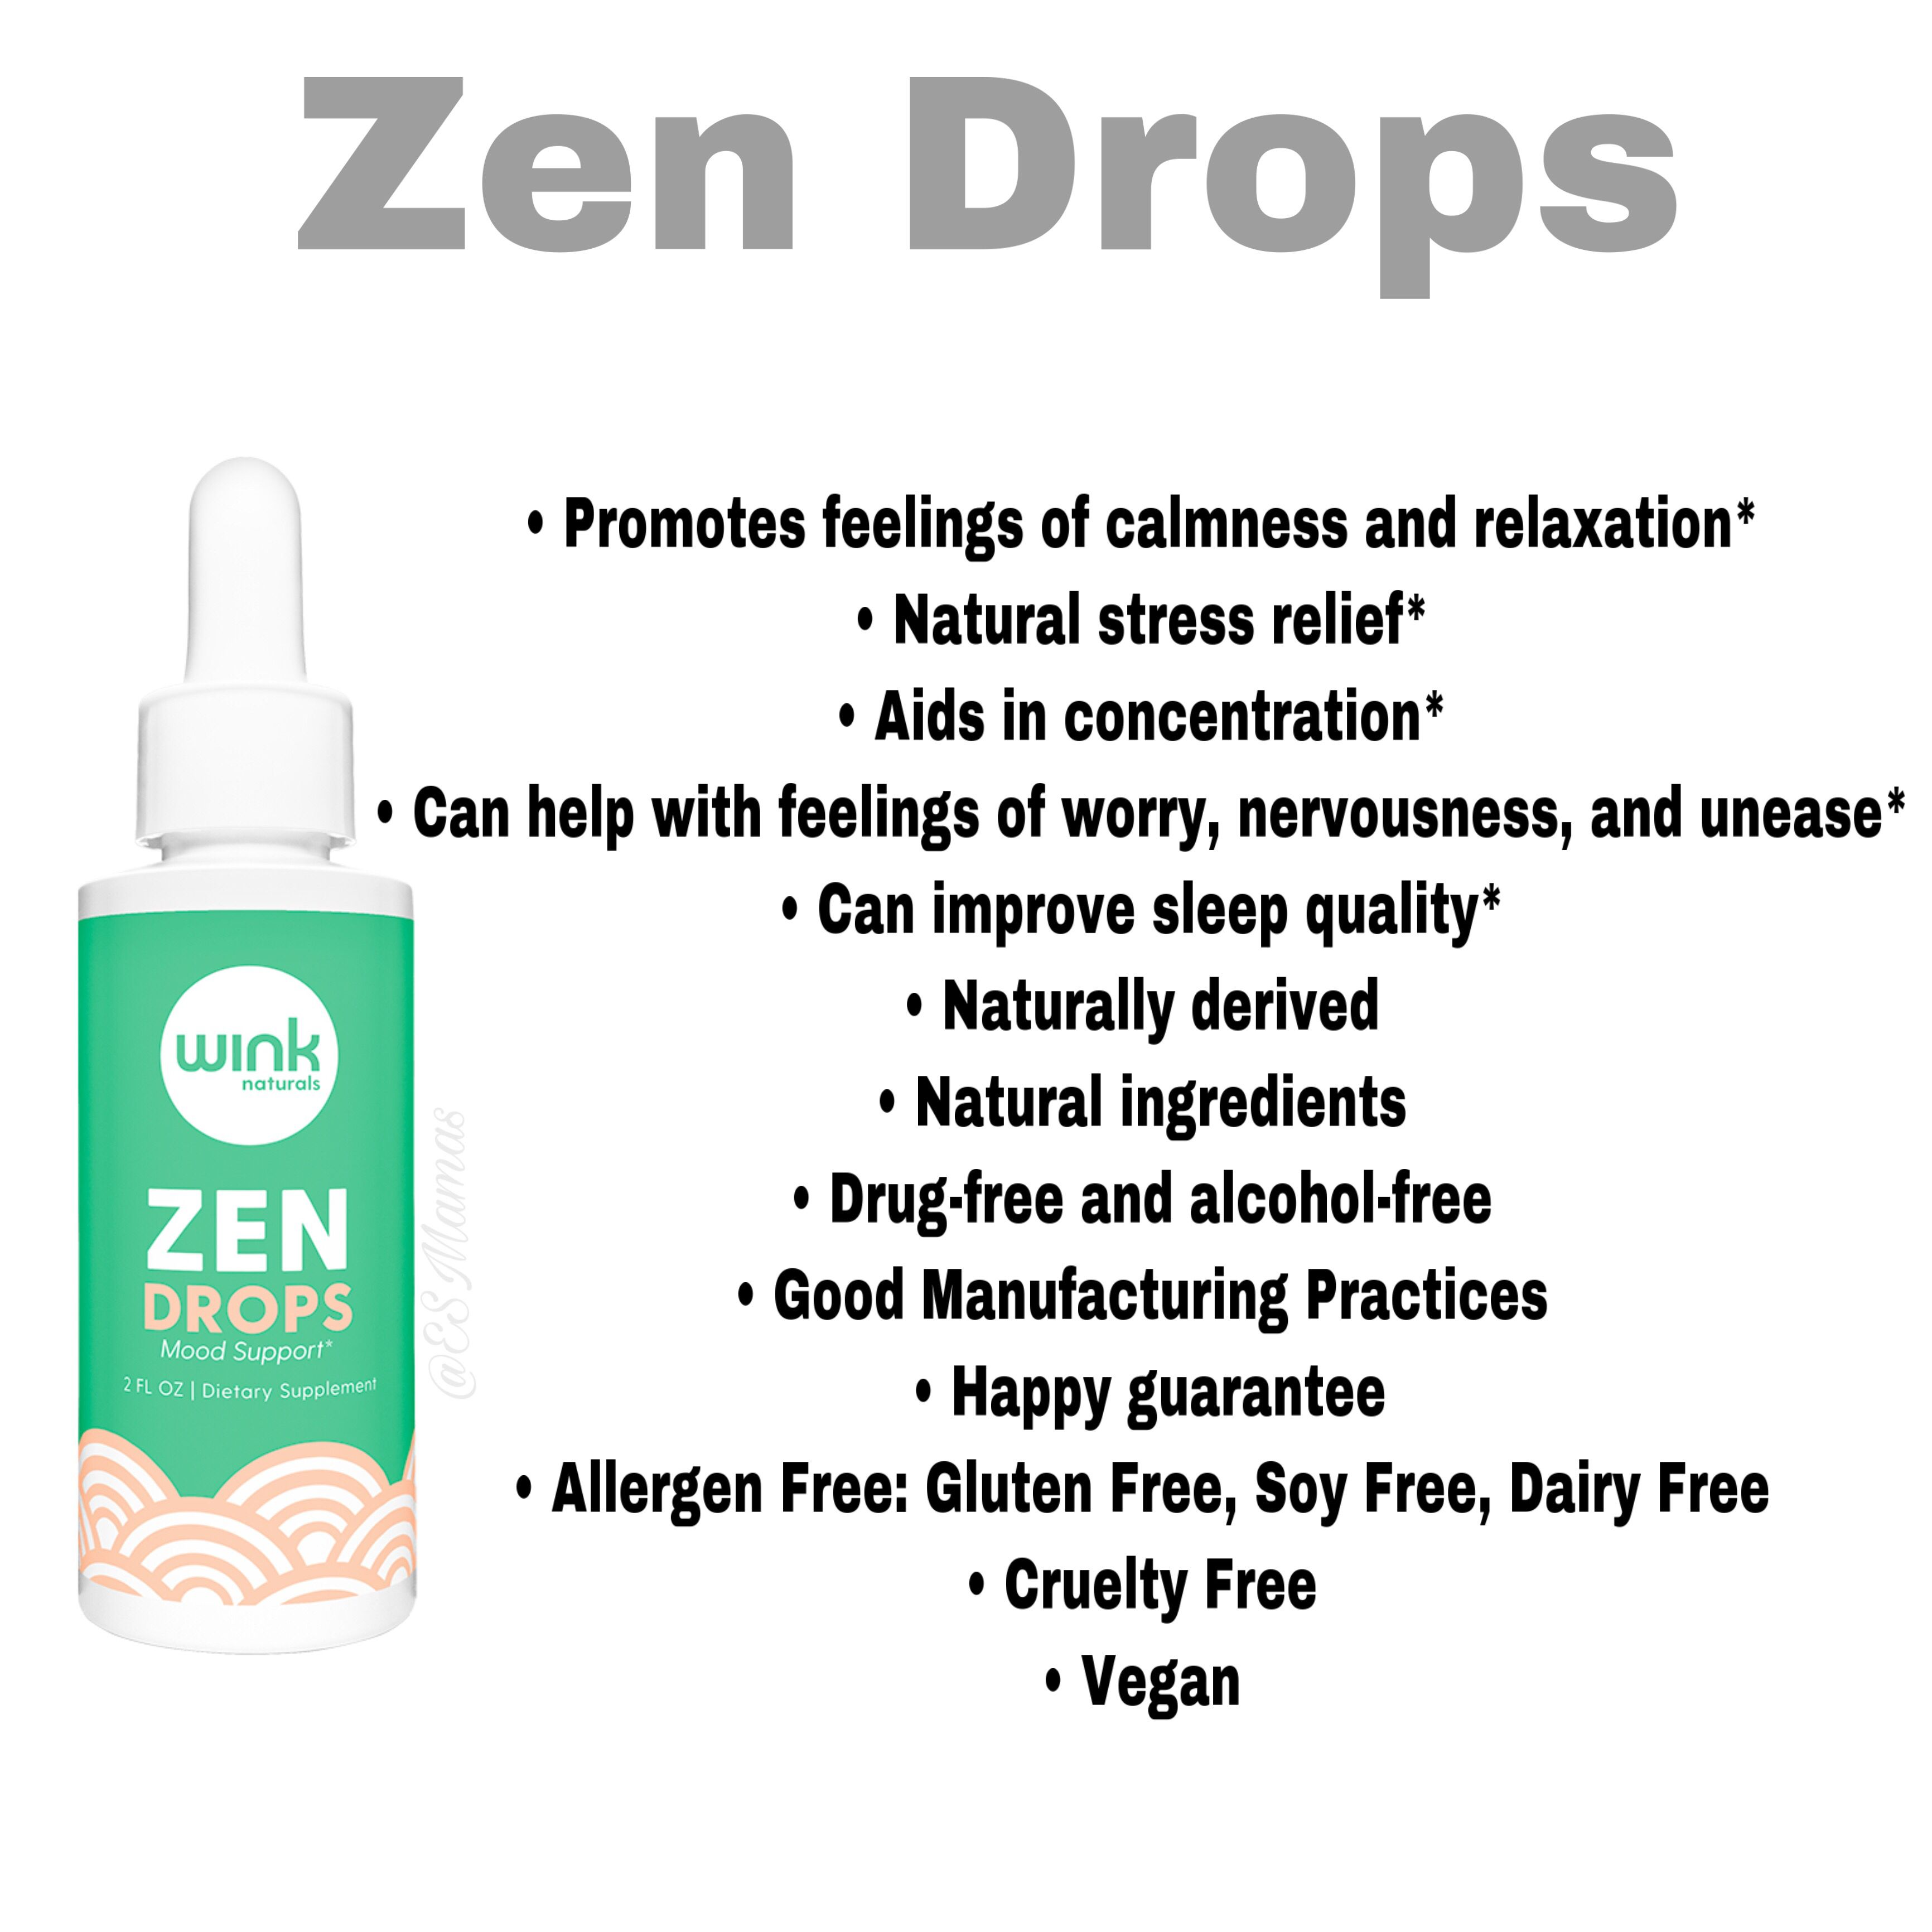 Zen Drops Natural Stress Relief Stress Relief Good Manufacturing Practice